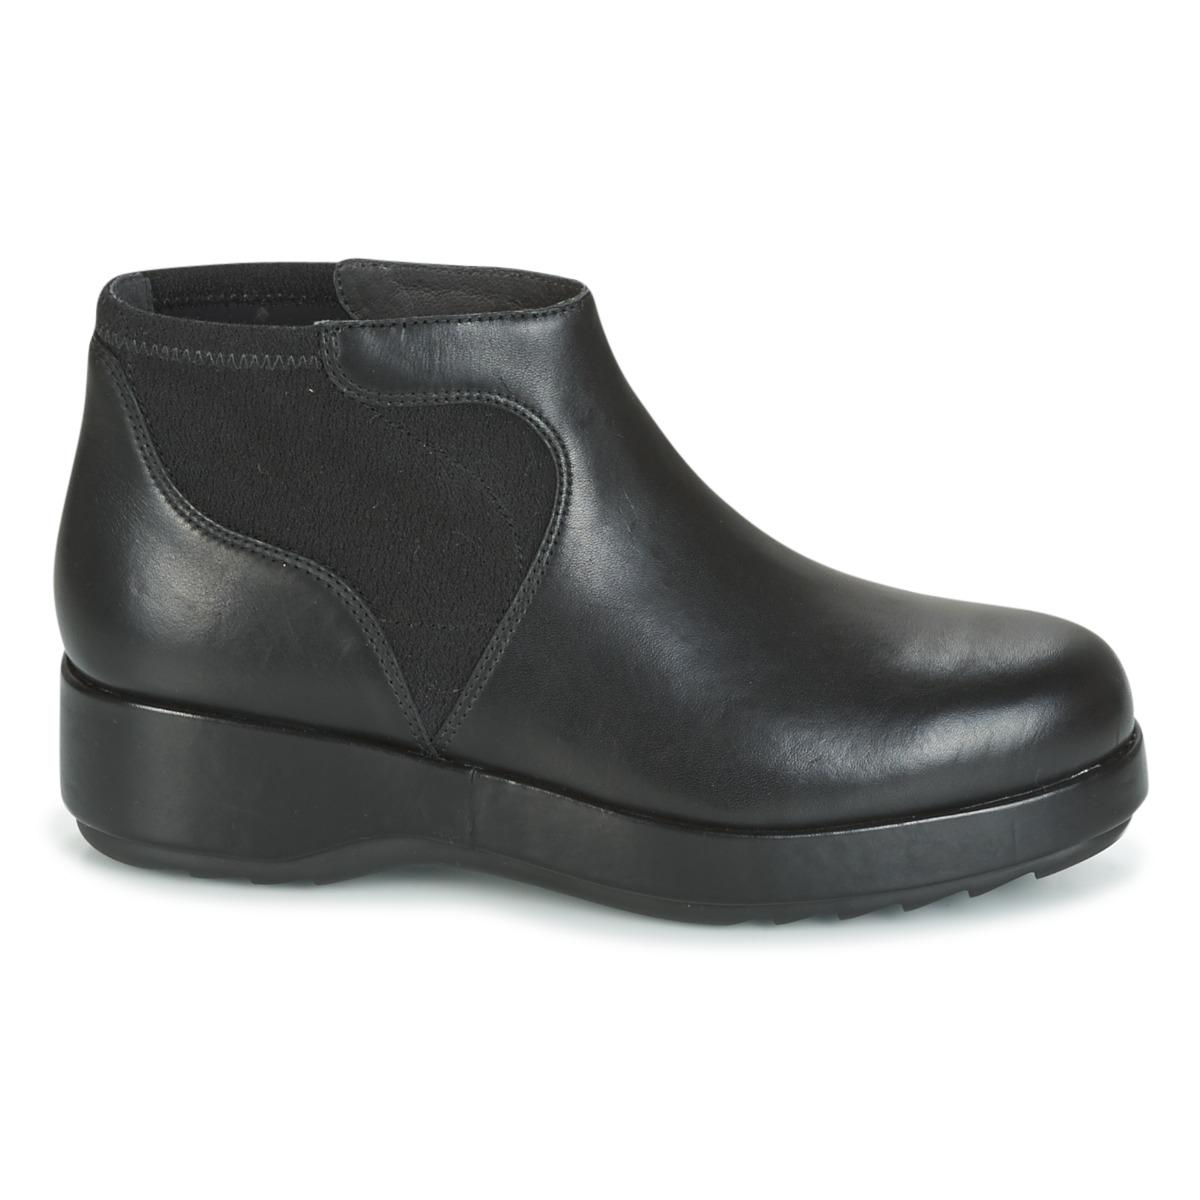 Outlet Online Camper DESSA women's Mid Boots in Ebay Manchester Buy Cheap Eastbay Brand New Unisex Sale Online Luij9V